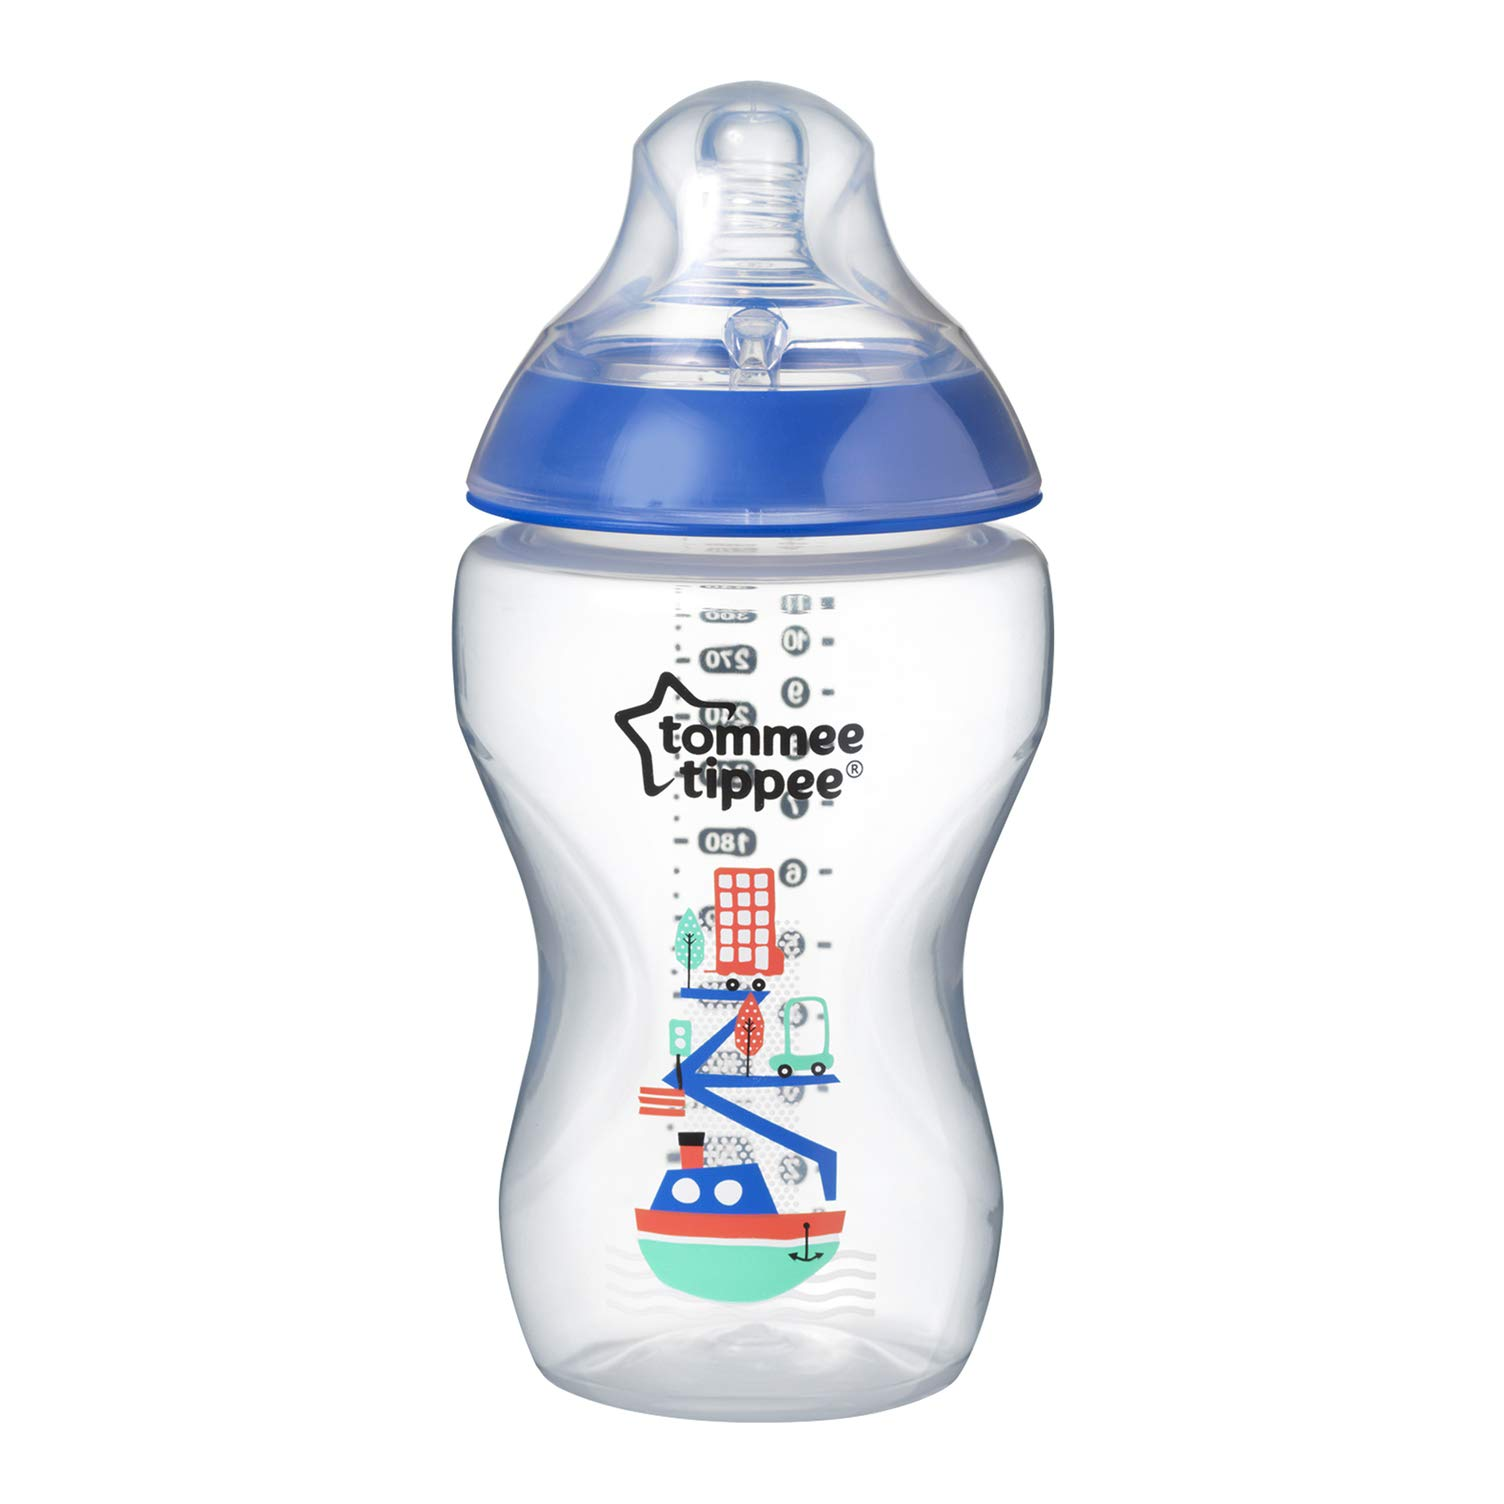 Tommee Tippee 42269787 - Biberón decorado, 340 ml, color azul product image